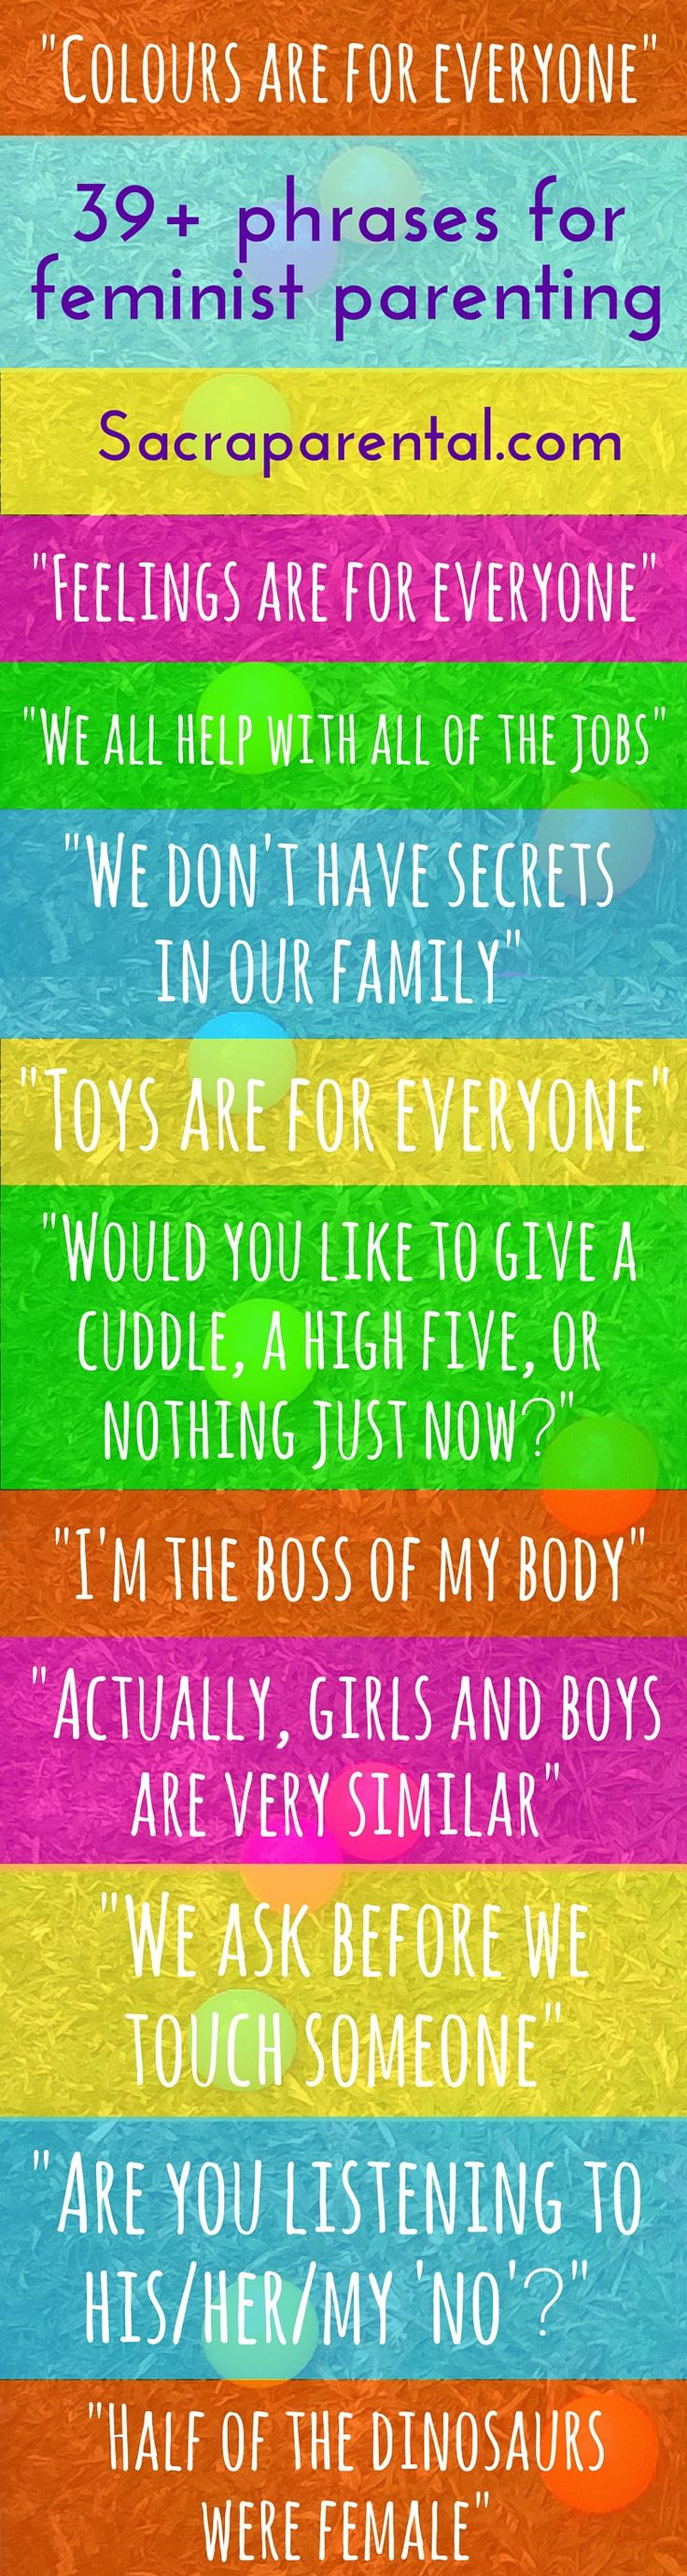 Gender neutral parenting infographic: 'Colours are for everyone!' - one of a great list of phrases for feminist parenting | Sacraparental.com